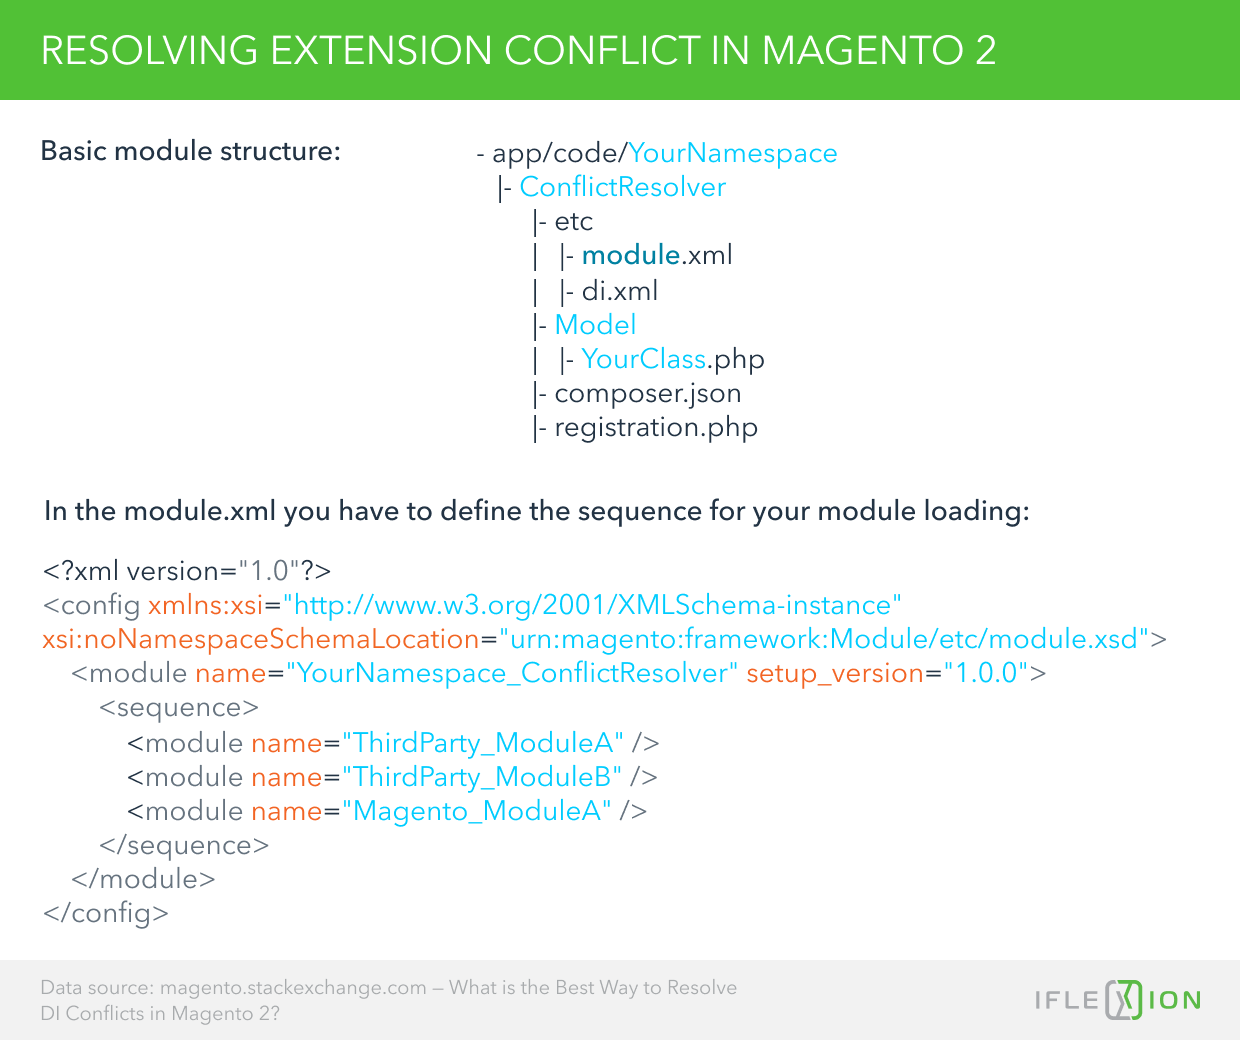 Resolving Extension Conflict in Magento 2